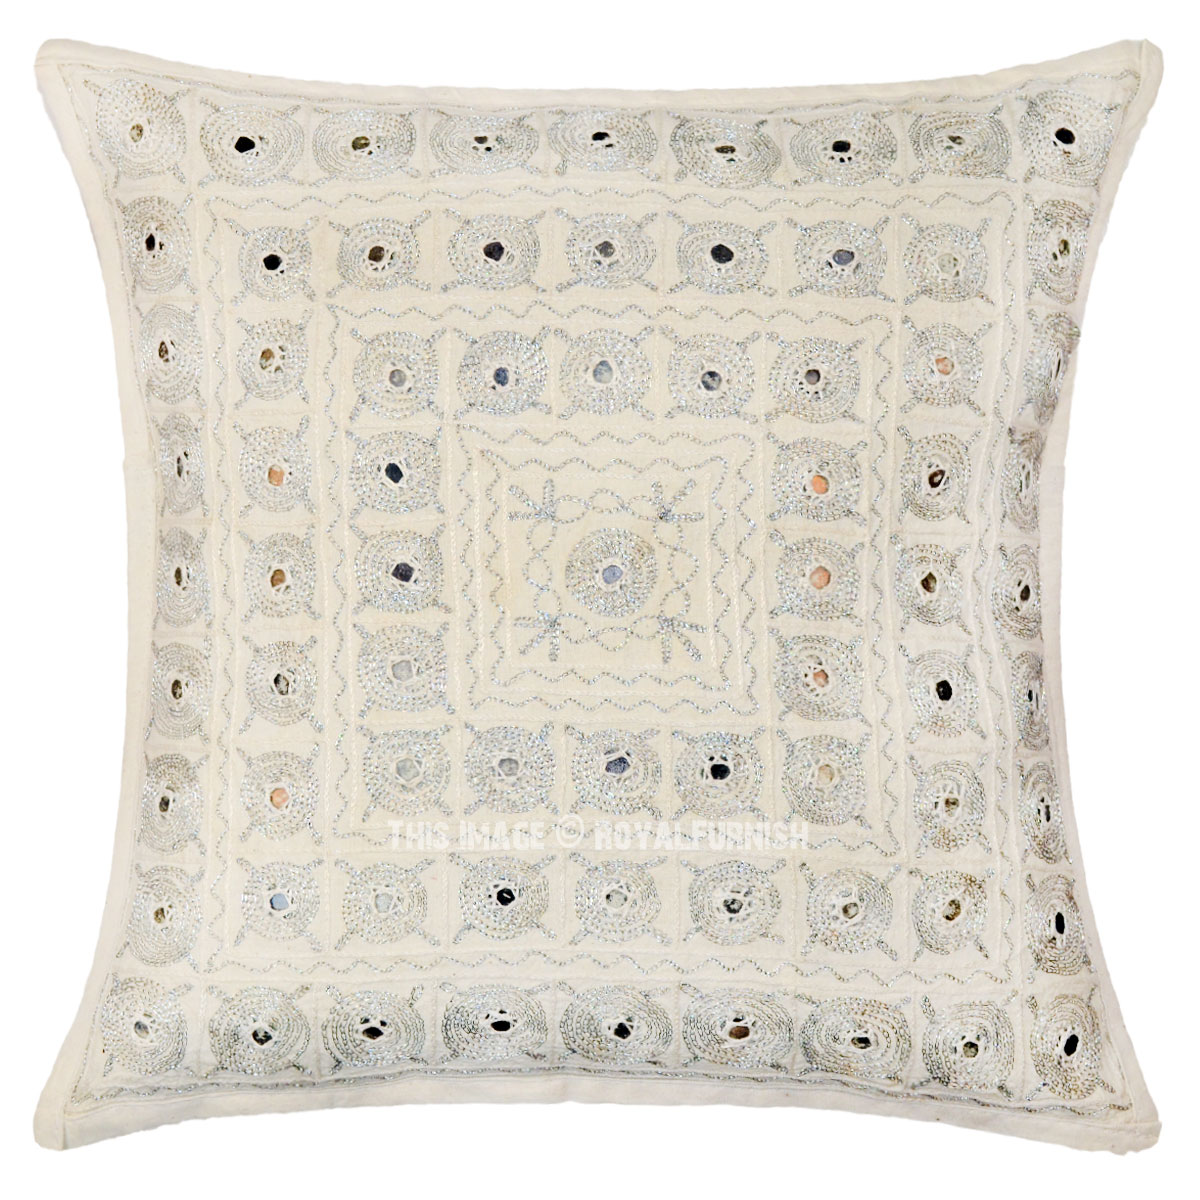 Decorative Pillows With Mirrors : Unique Indian Mirror Embroidered Decorative Cotton Throw Pillow Case - RoyalFurnish.com